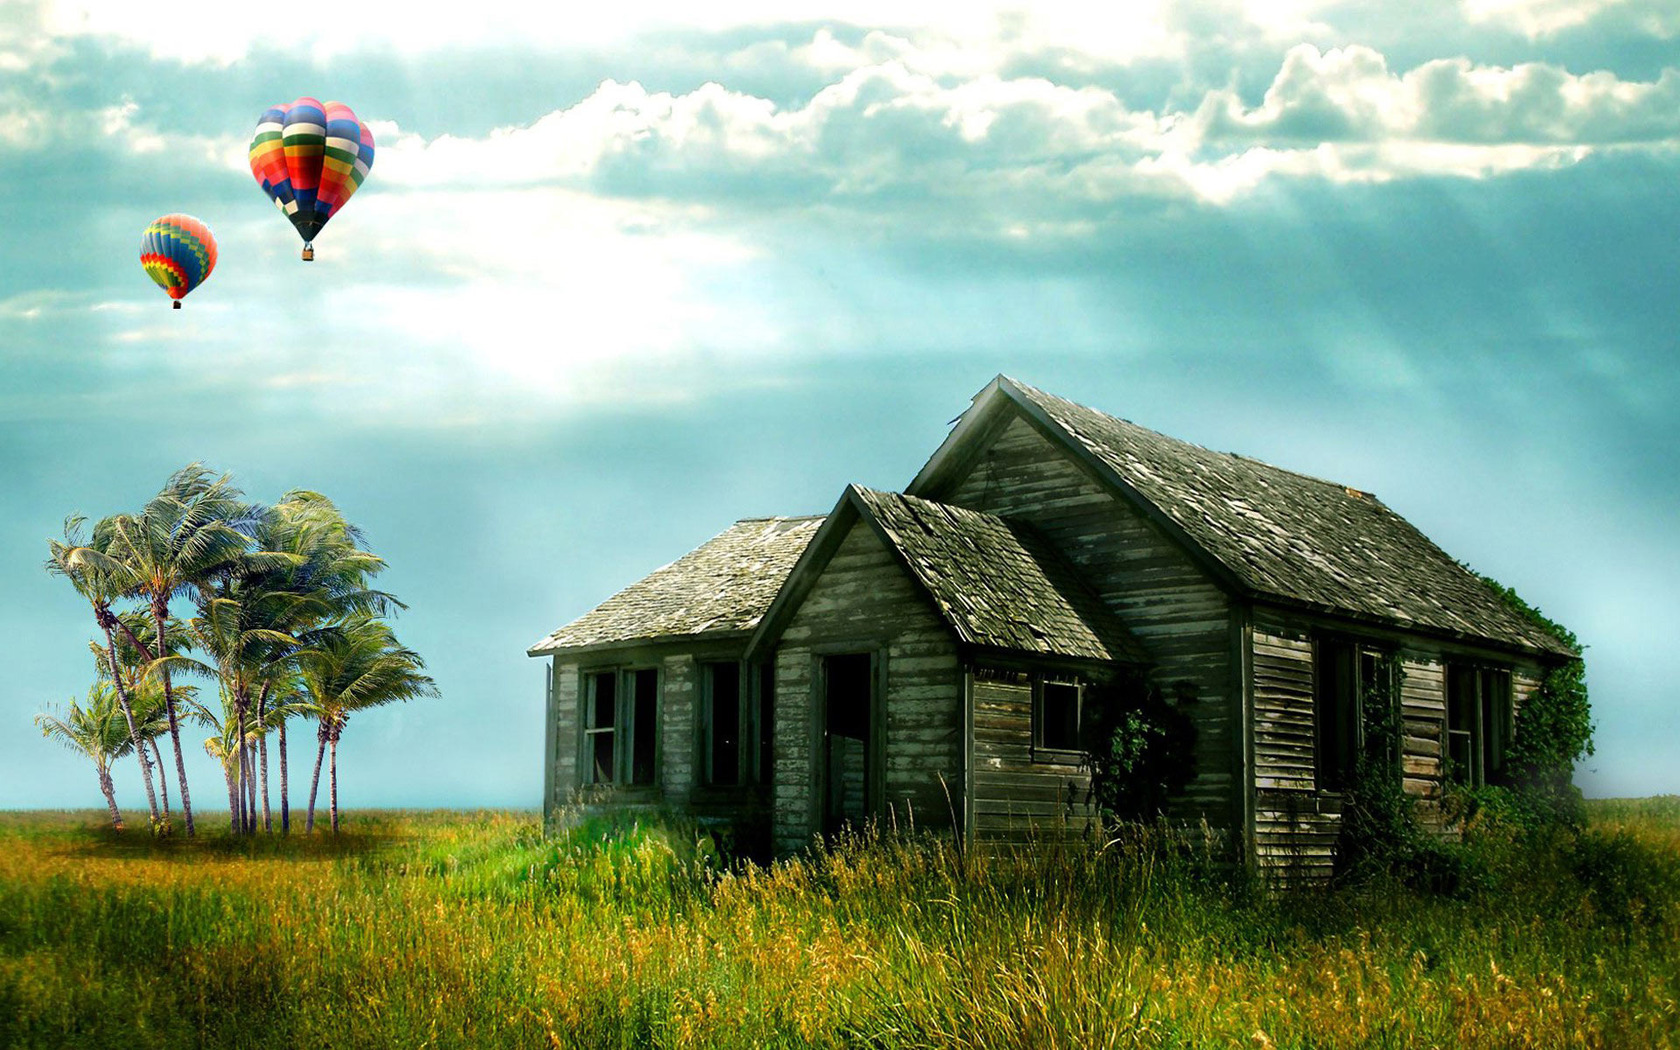 Old house and balloons on the field Wallpaper Original HD Wallpapers 1680x1050